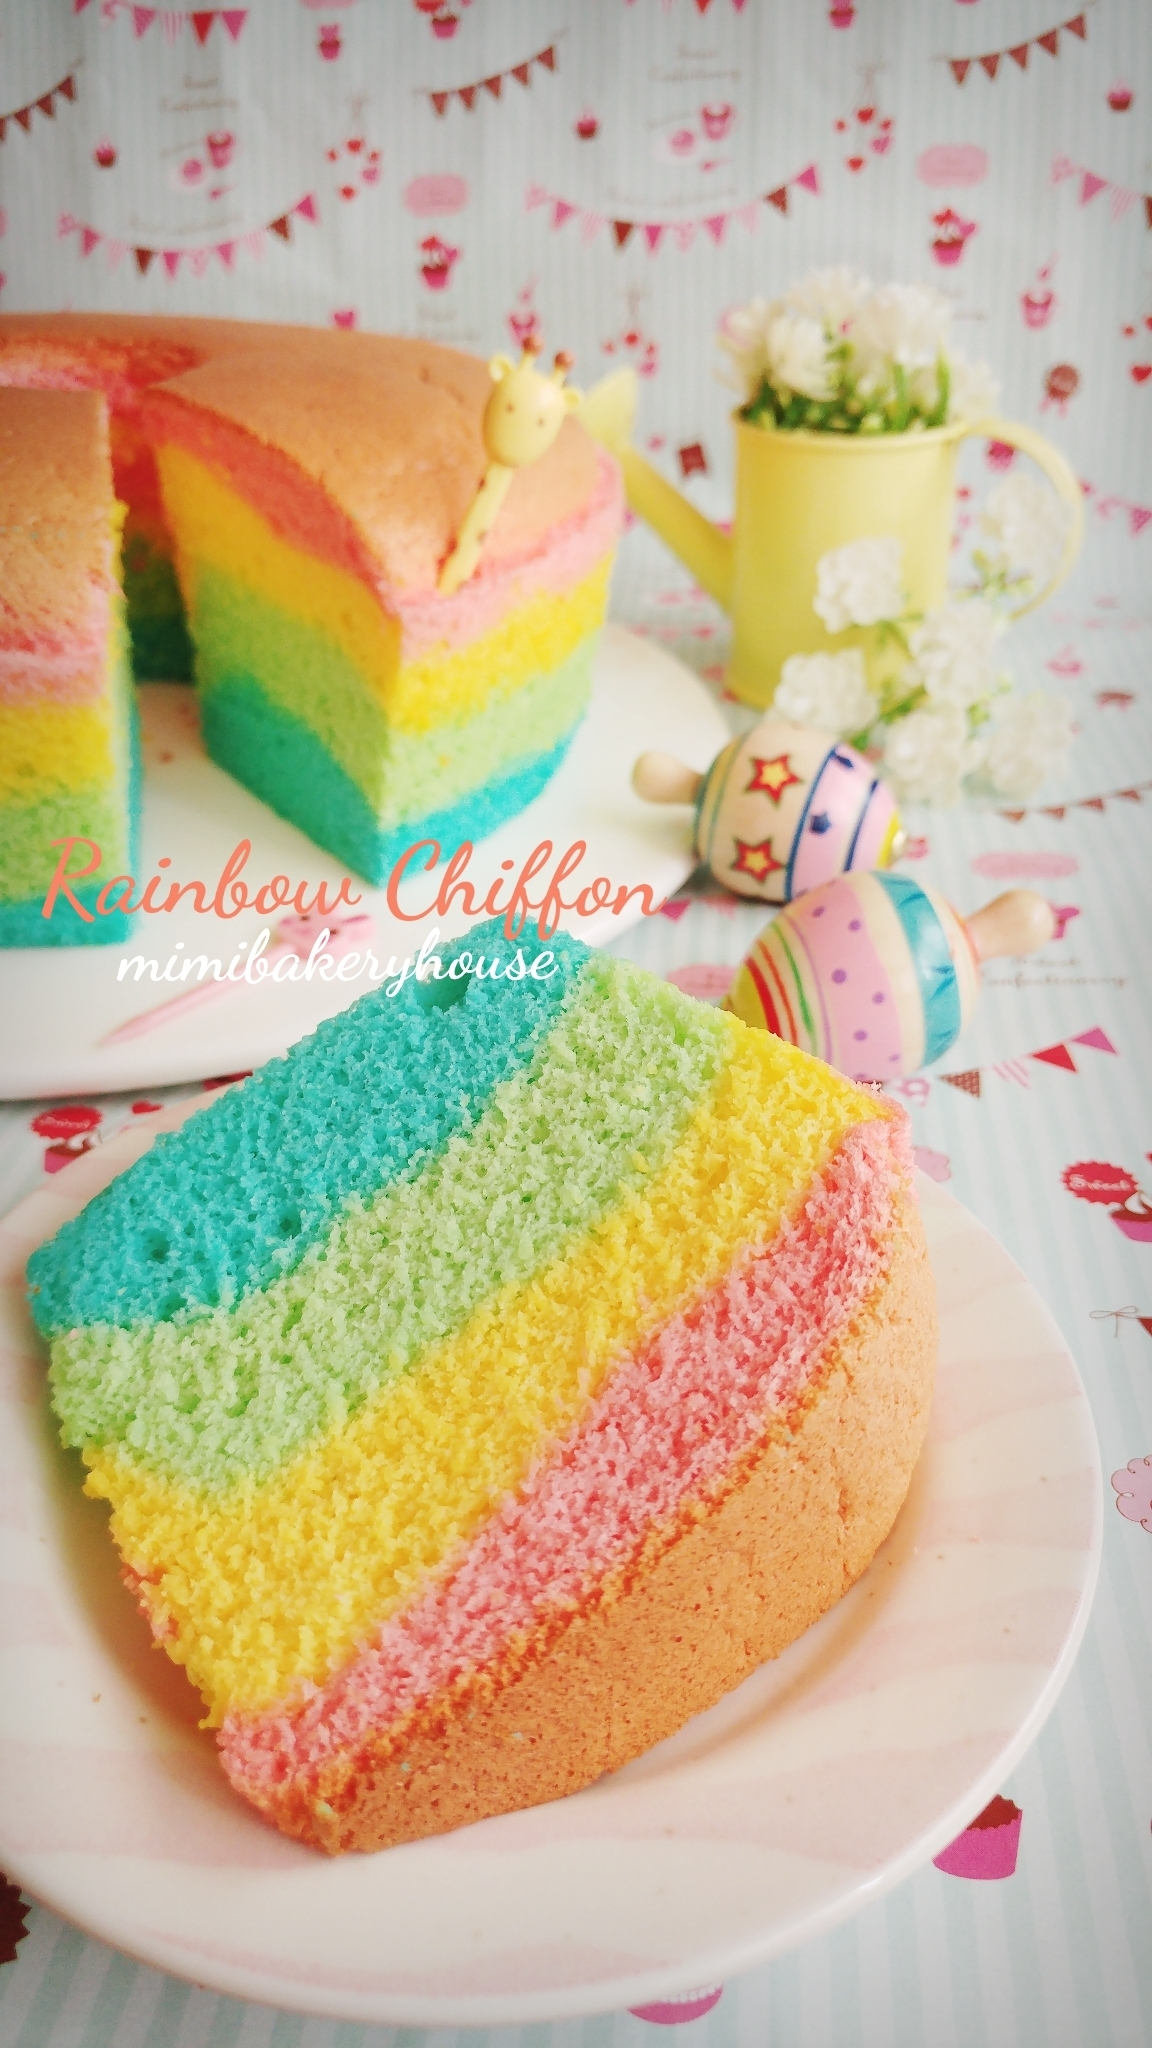 Rainbow Chiffon Cake 2 [07 June 2016]